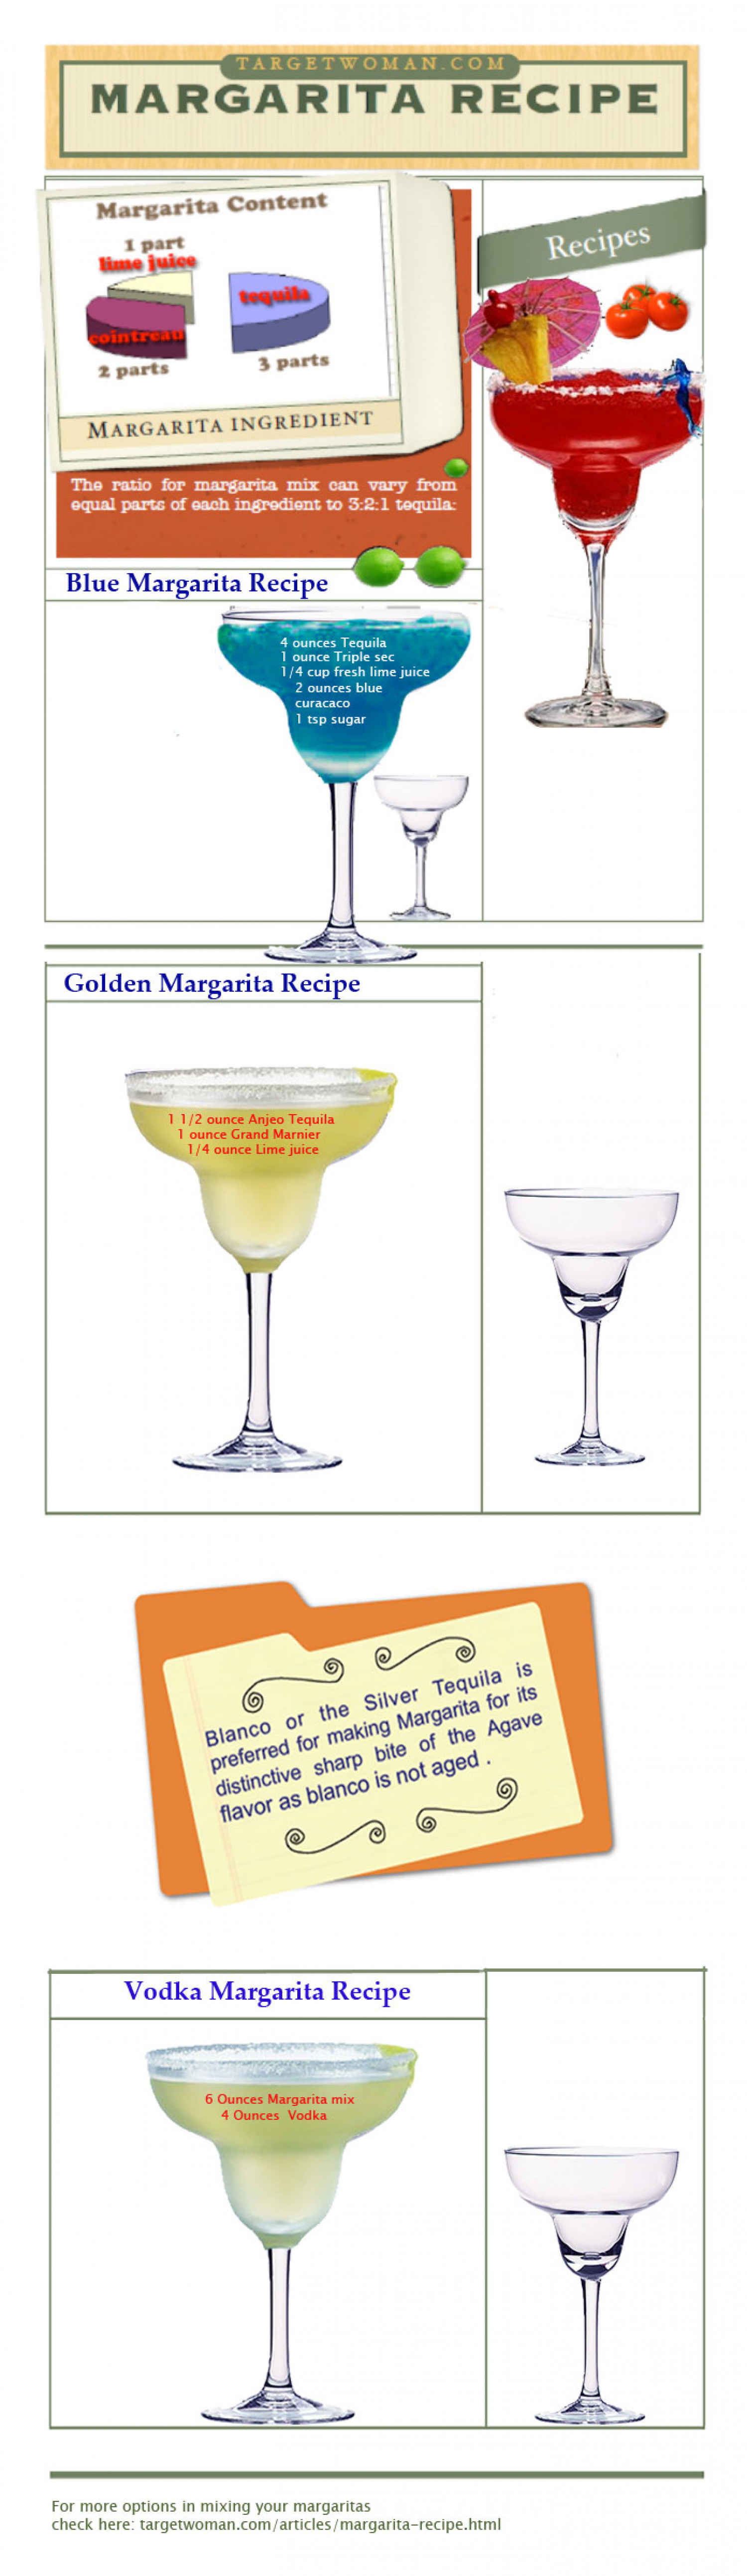 Margarita Recipes Infographic